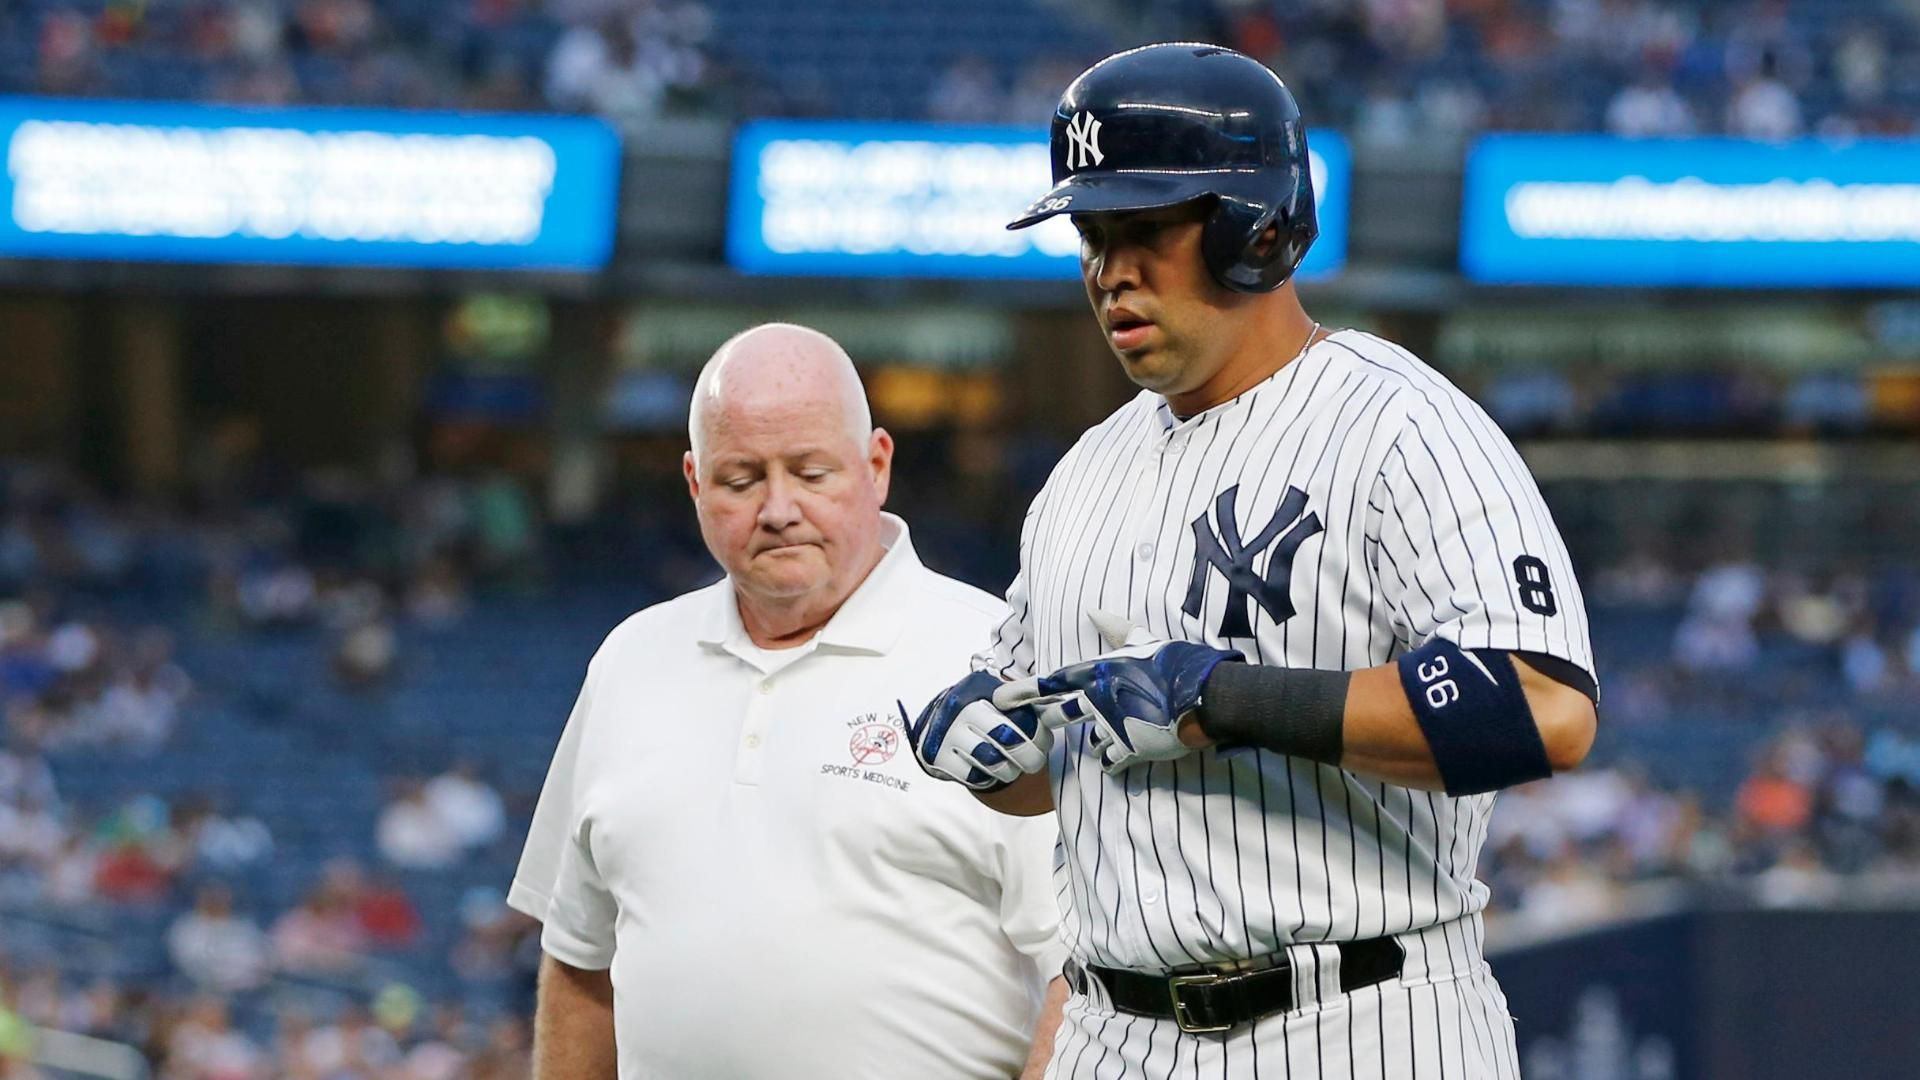 Beltran exits early with apparent leg injury